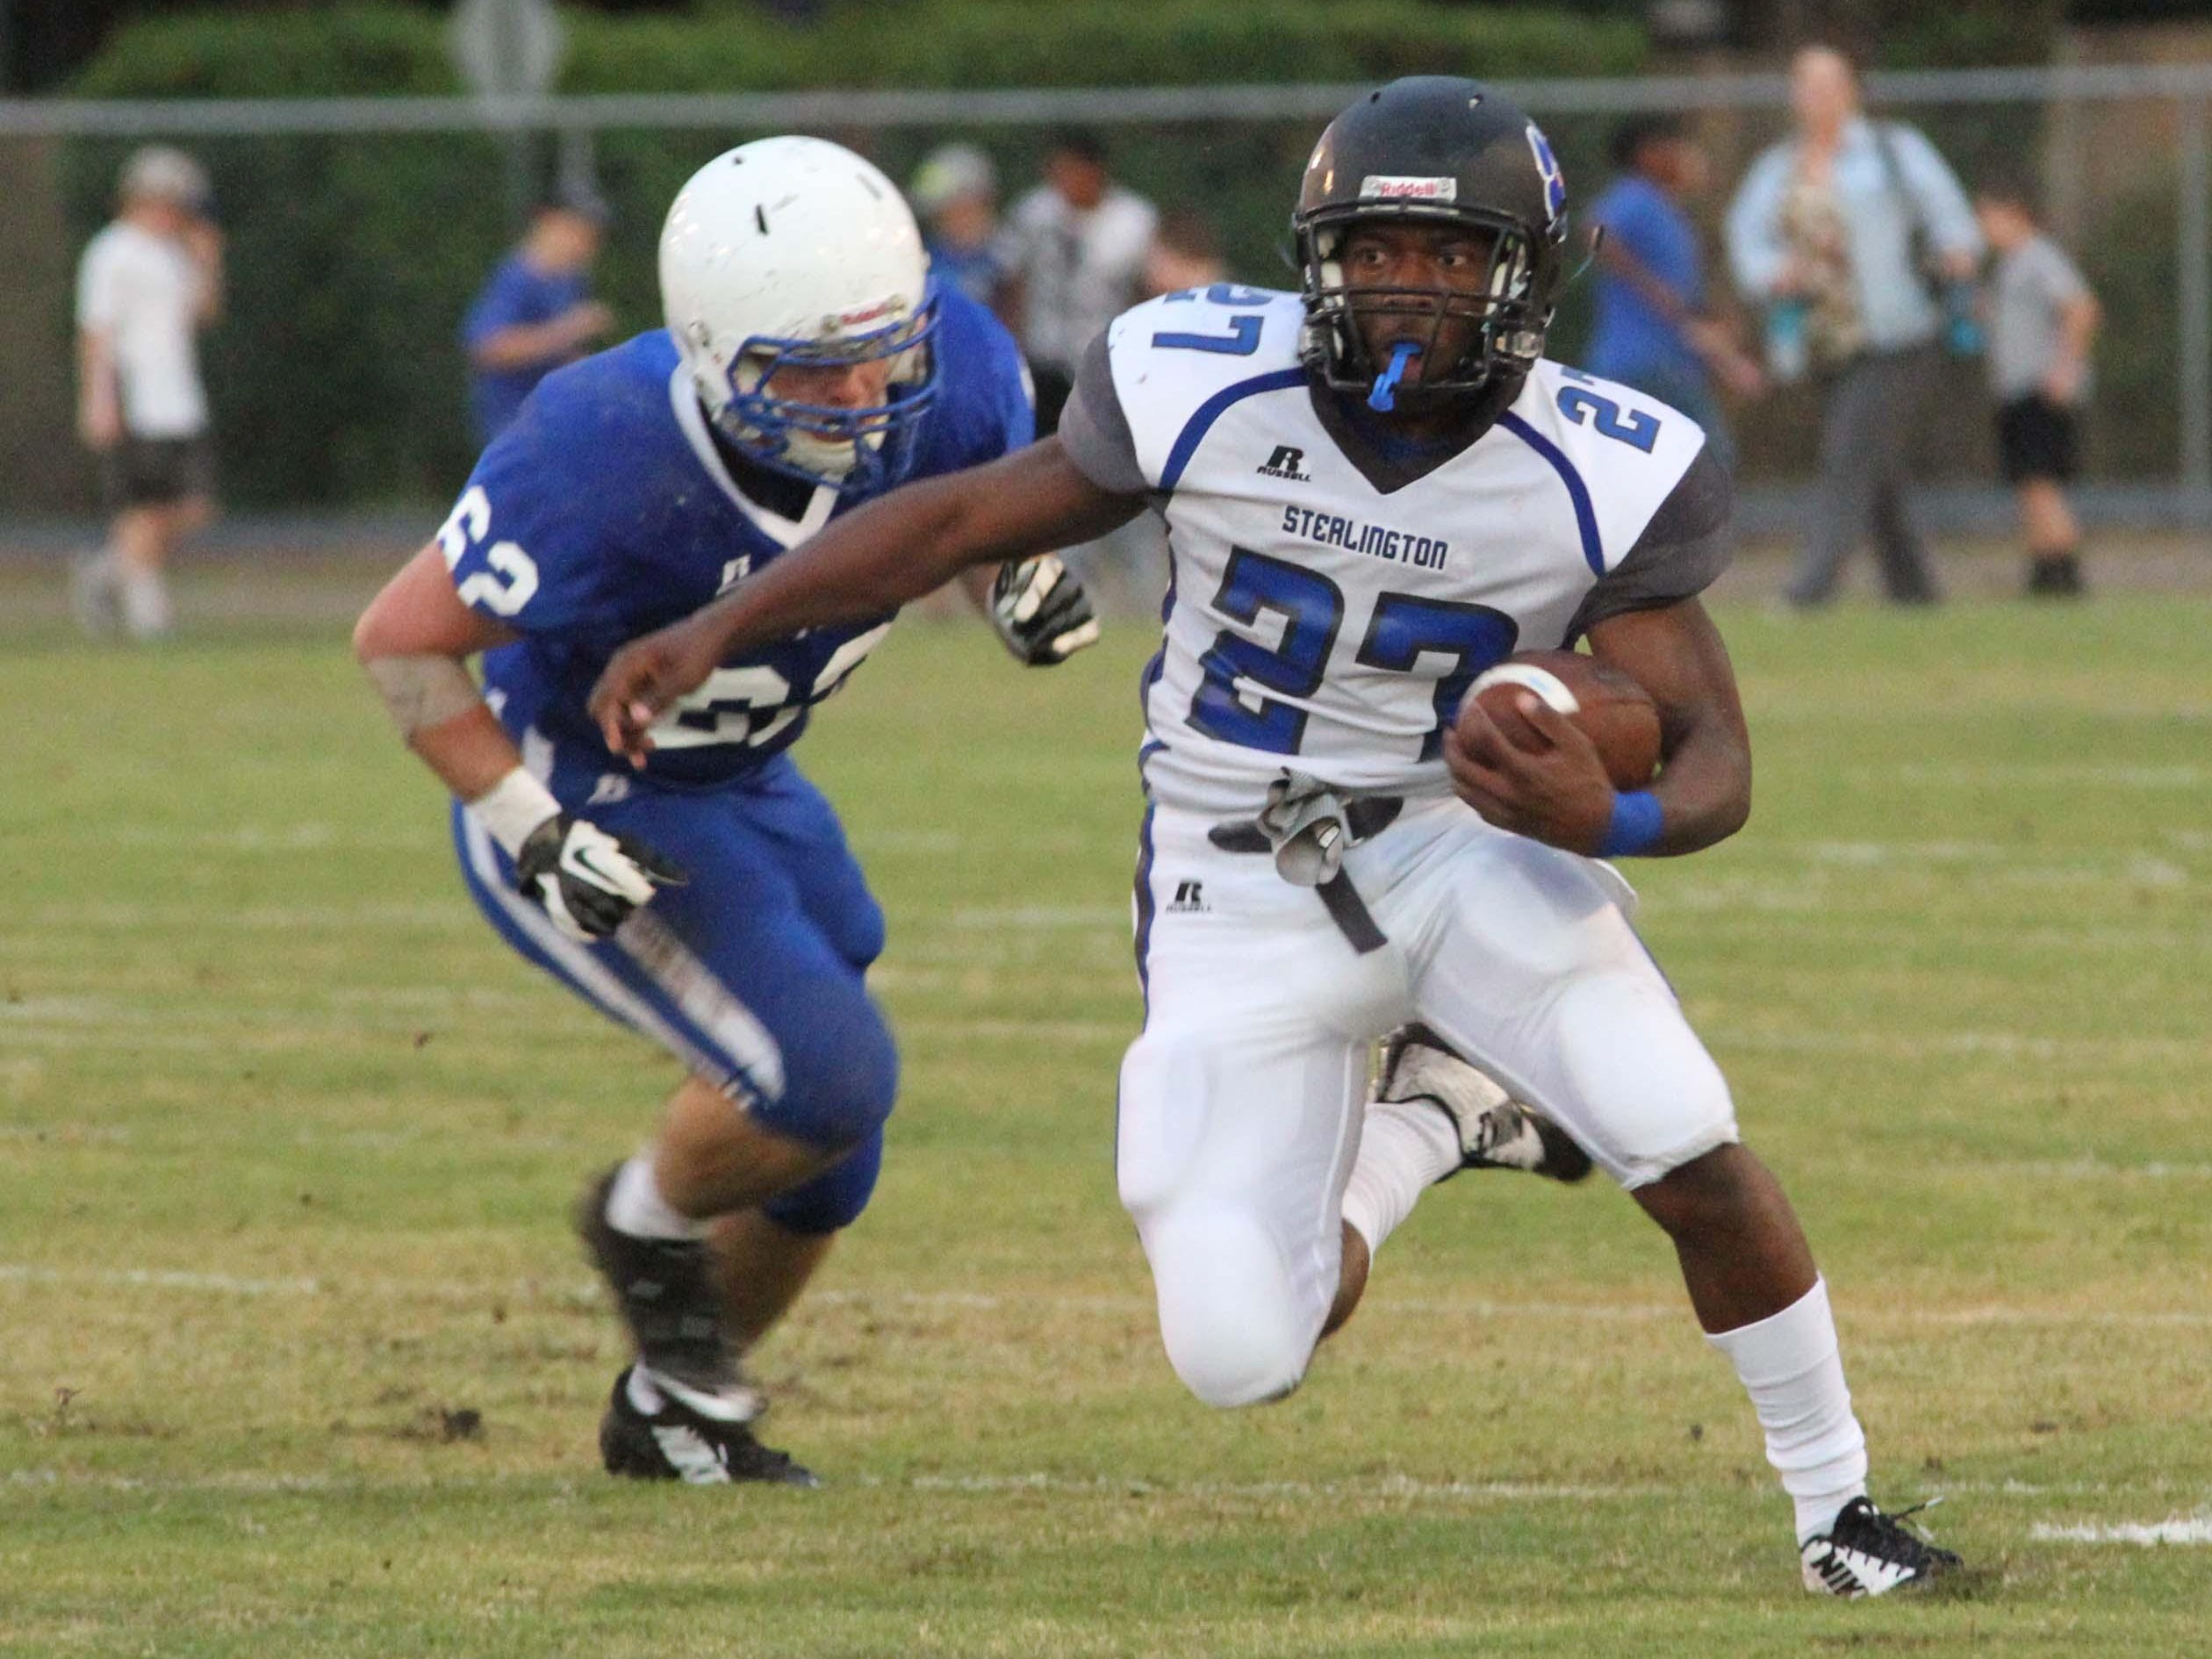 Sterlington's DeVante Douglas (27) carries the ball for the Panthers in first half action against the St. Frederick Warriors Friday night in Monroe.